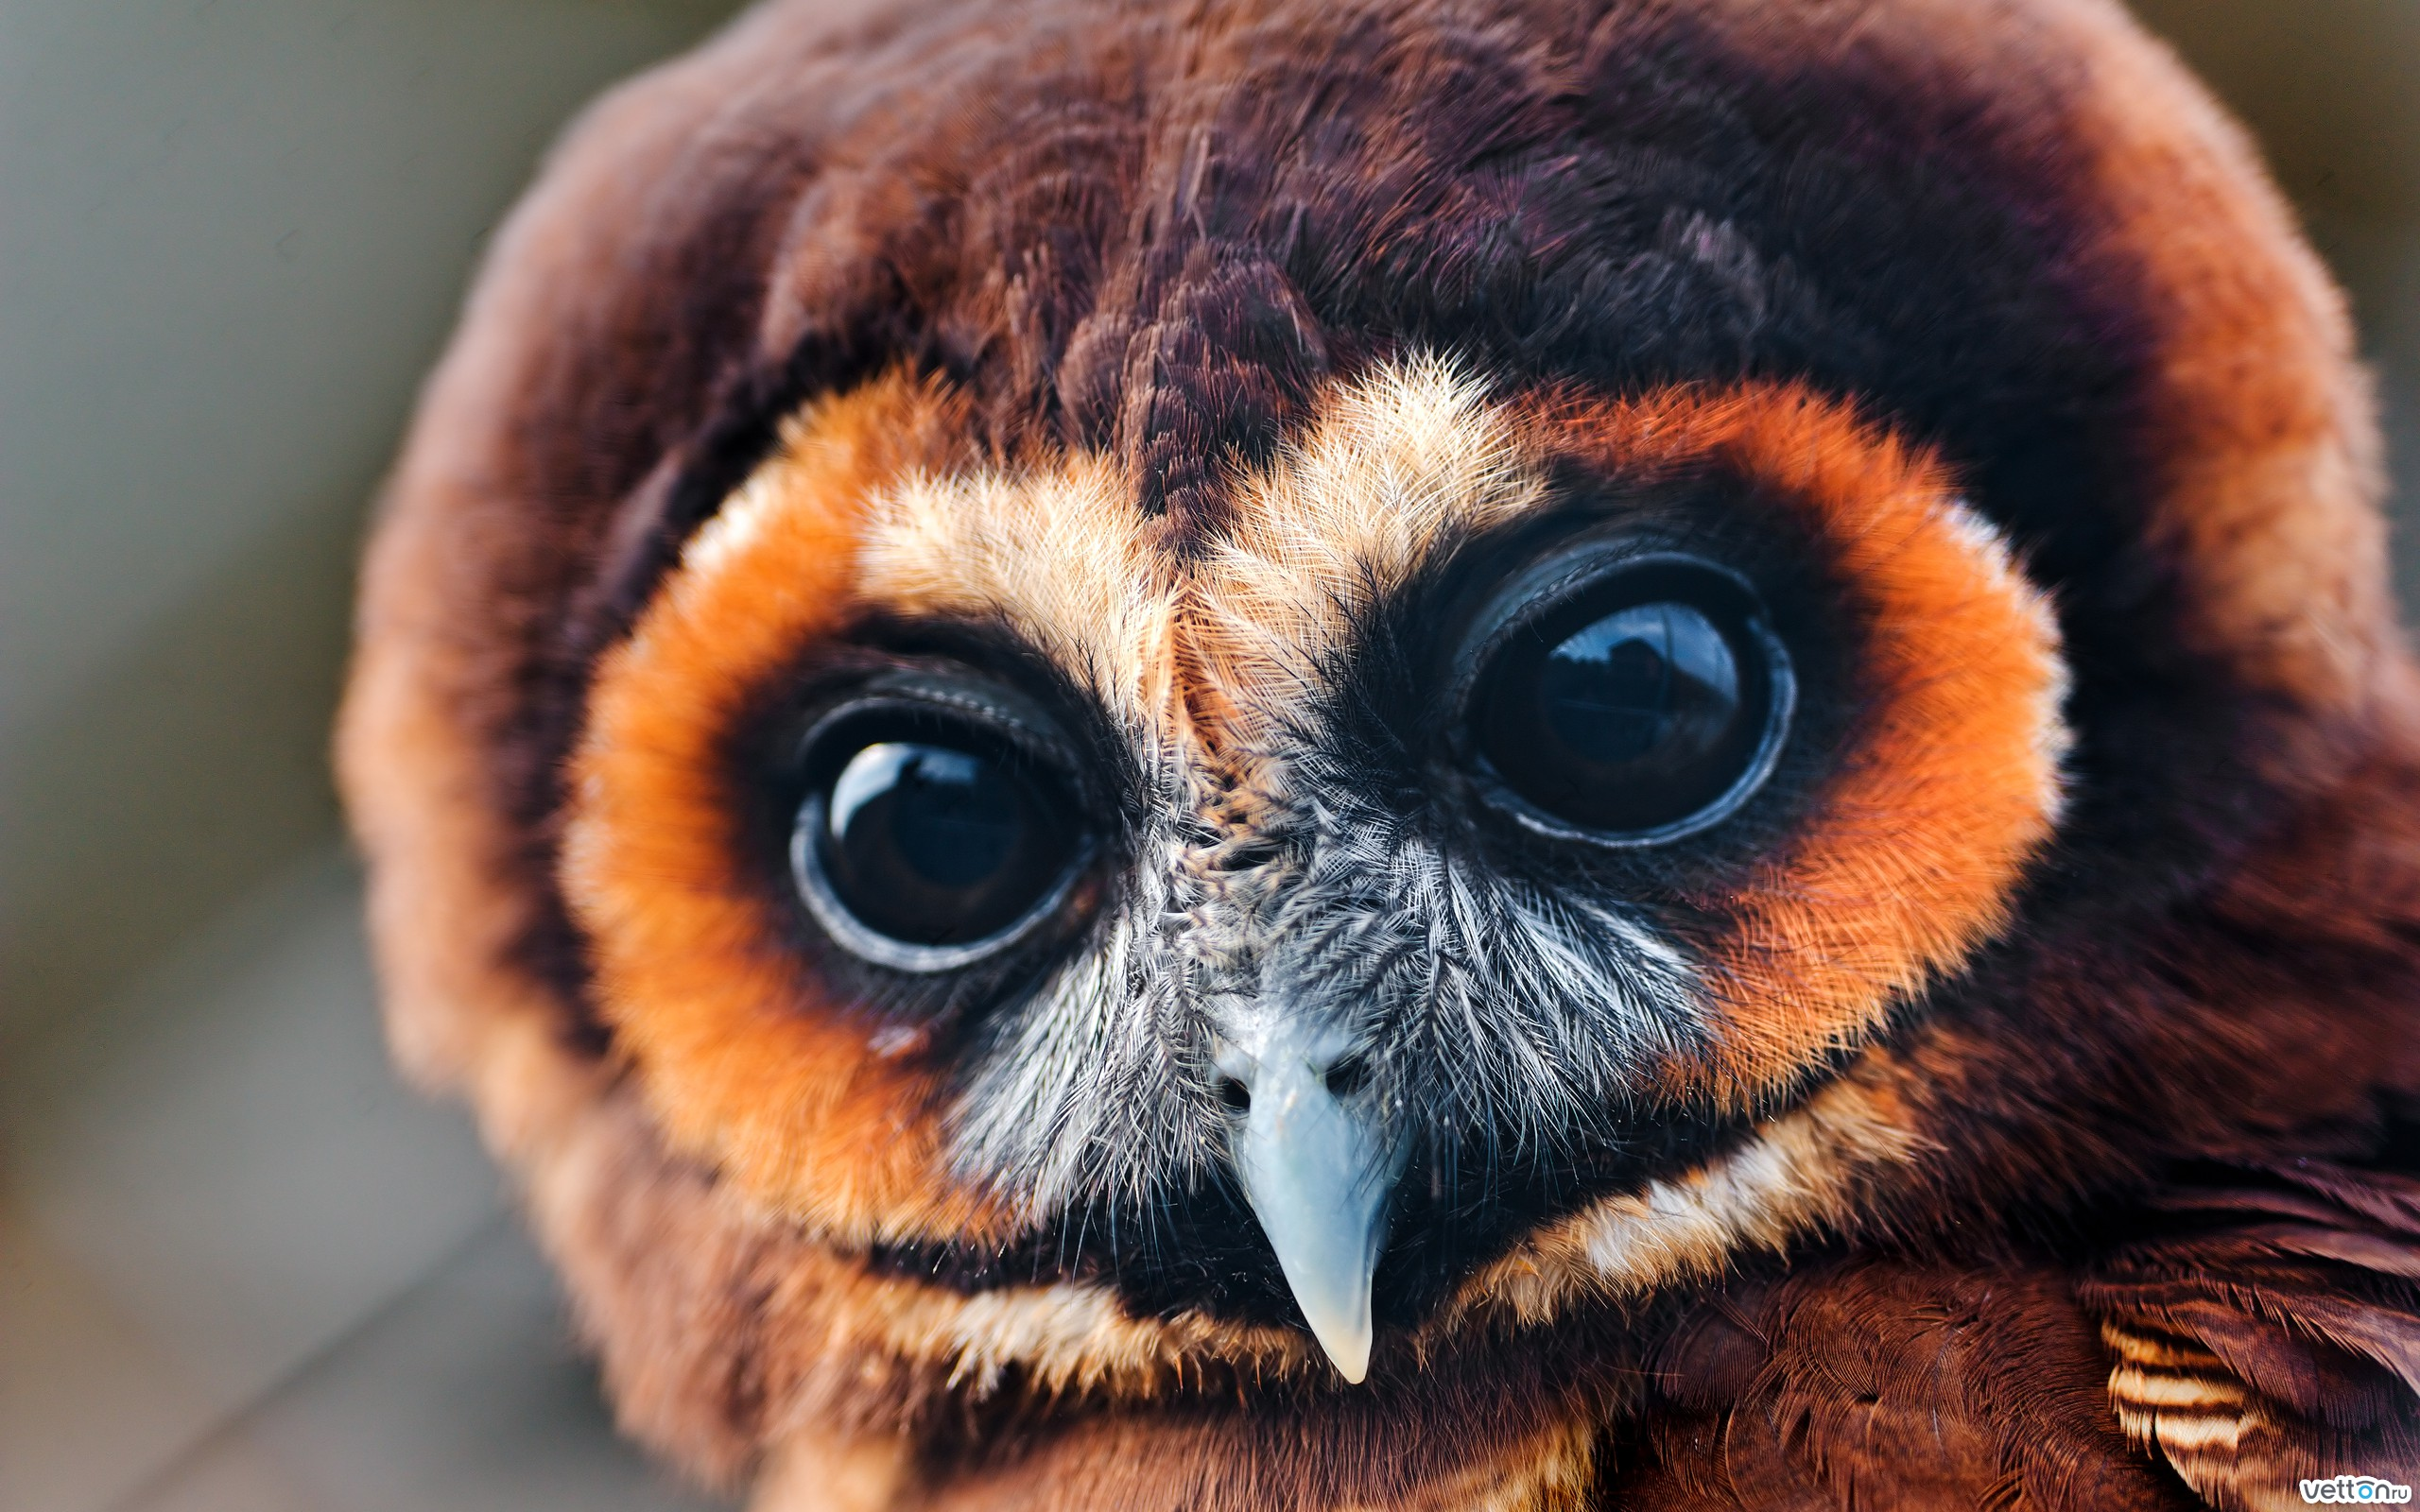 eyes, owl, owlet, great, look